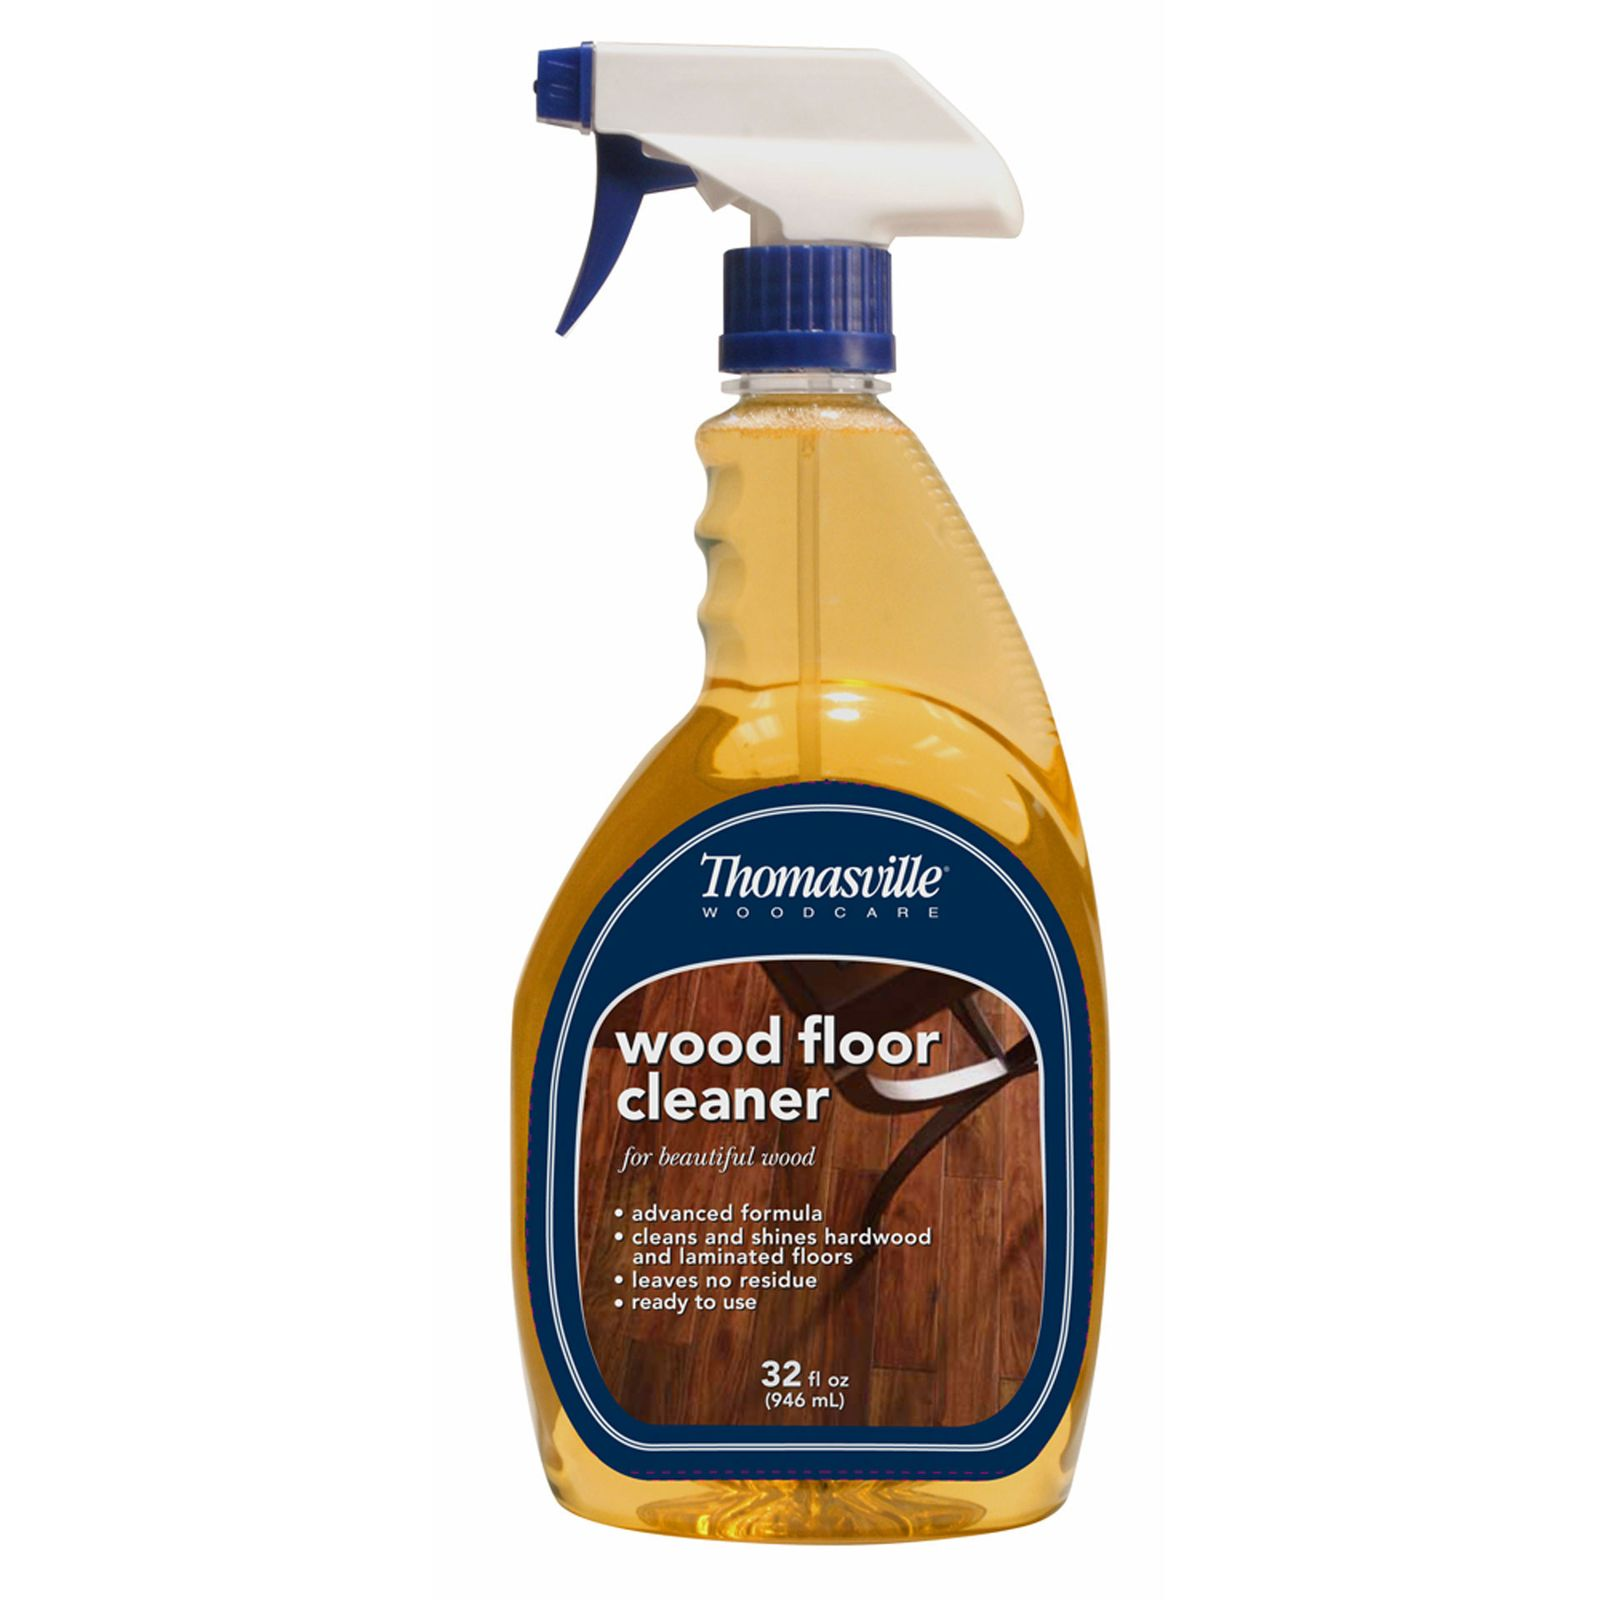 thomasville wood floor cleaner review ForHardwood Floor Cleaner